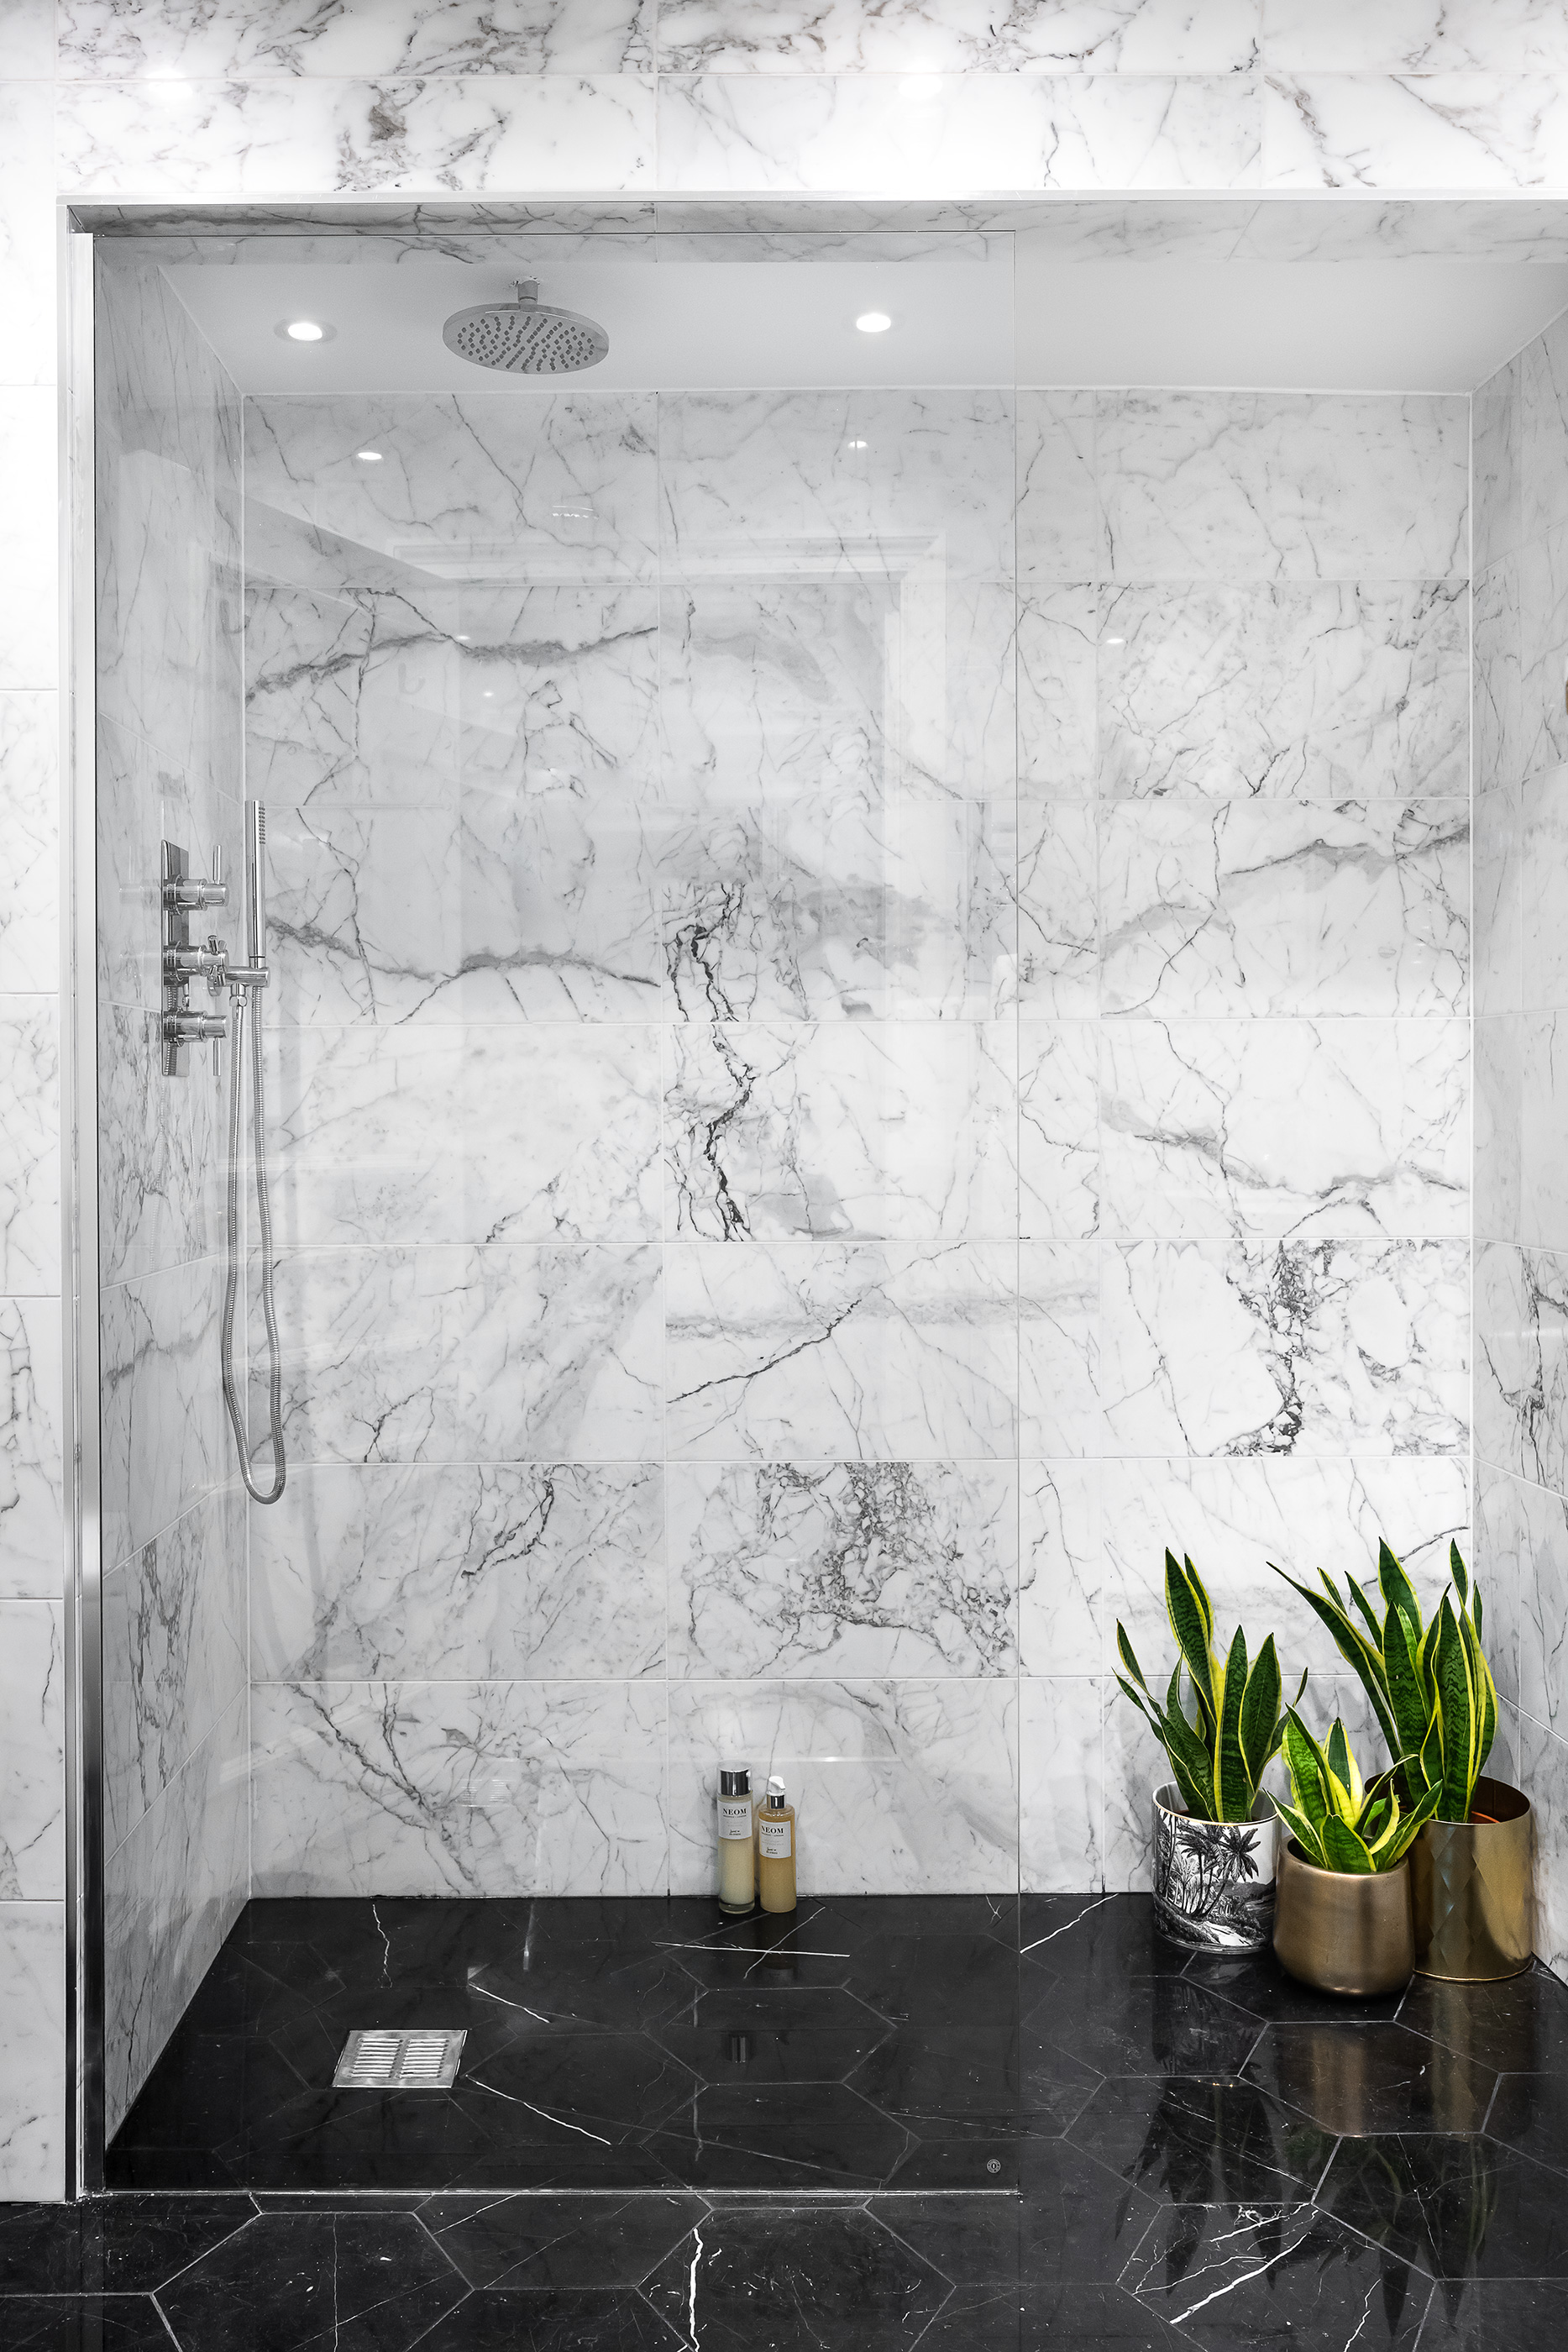 Knightsbridge bathroom:    A complete transformation of an old dated bathroom. We created a stunning arabescato marble bathroom for our client who was renting their property and needed to update it.